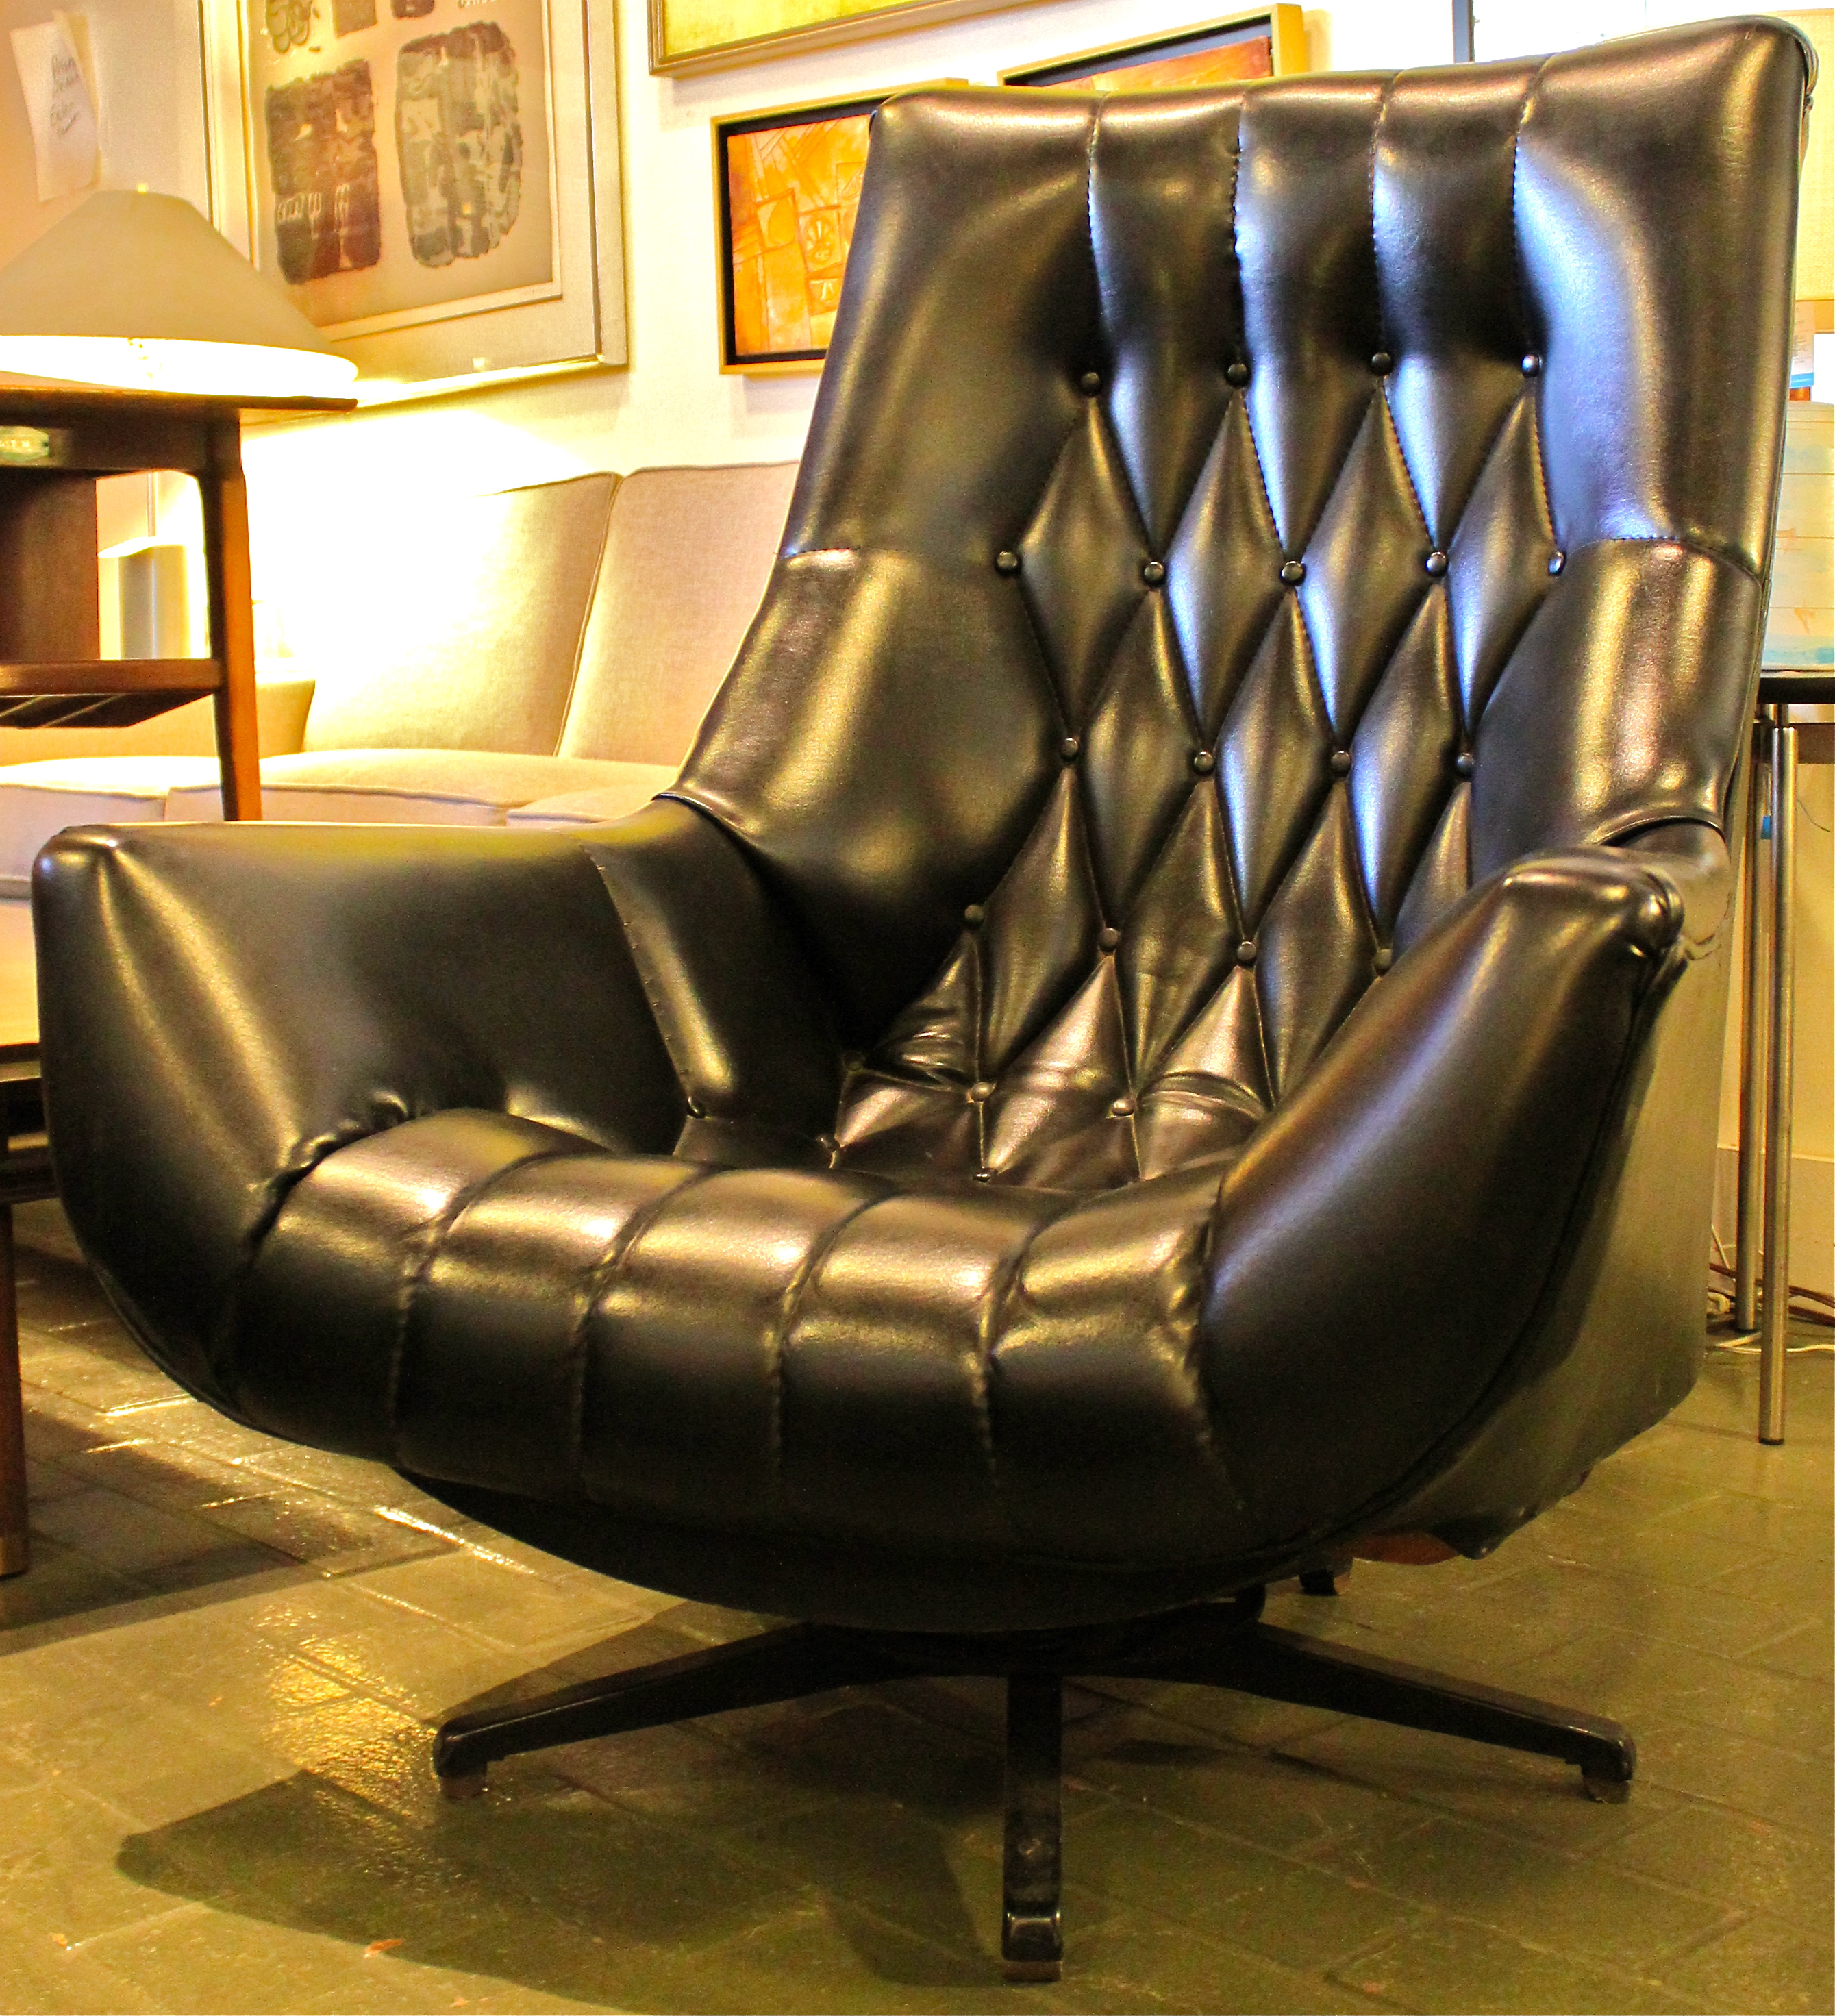 Black Tufted Lounge Chair Mid Century Modern Lounge chair Vintage Modern V